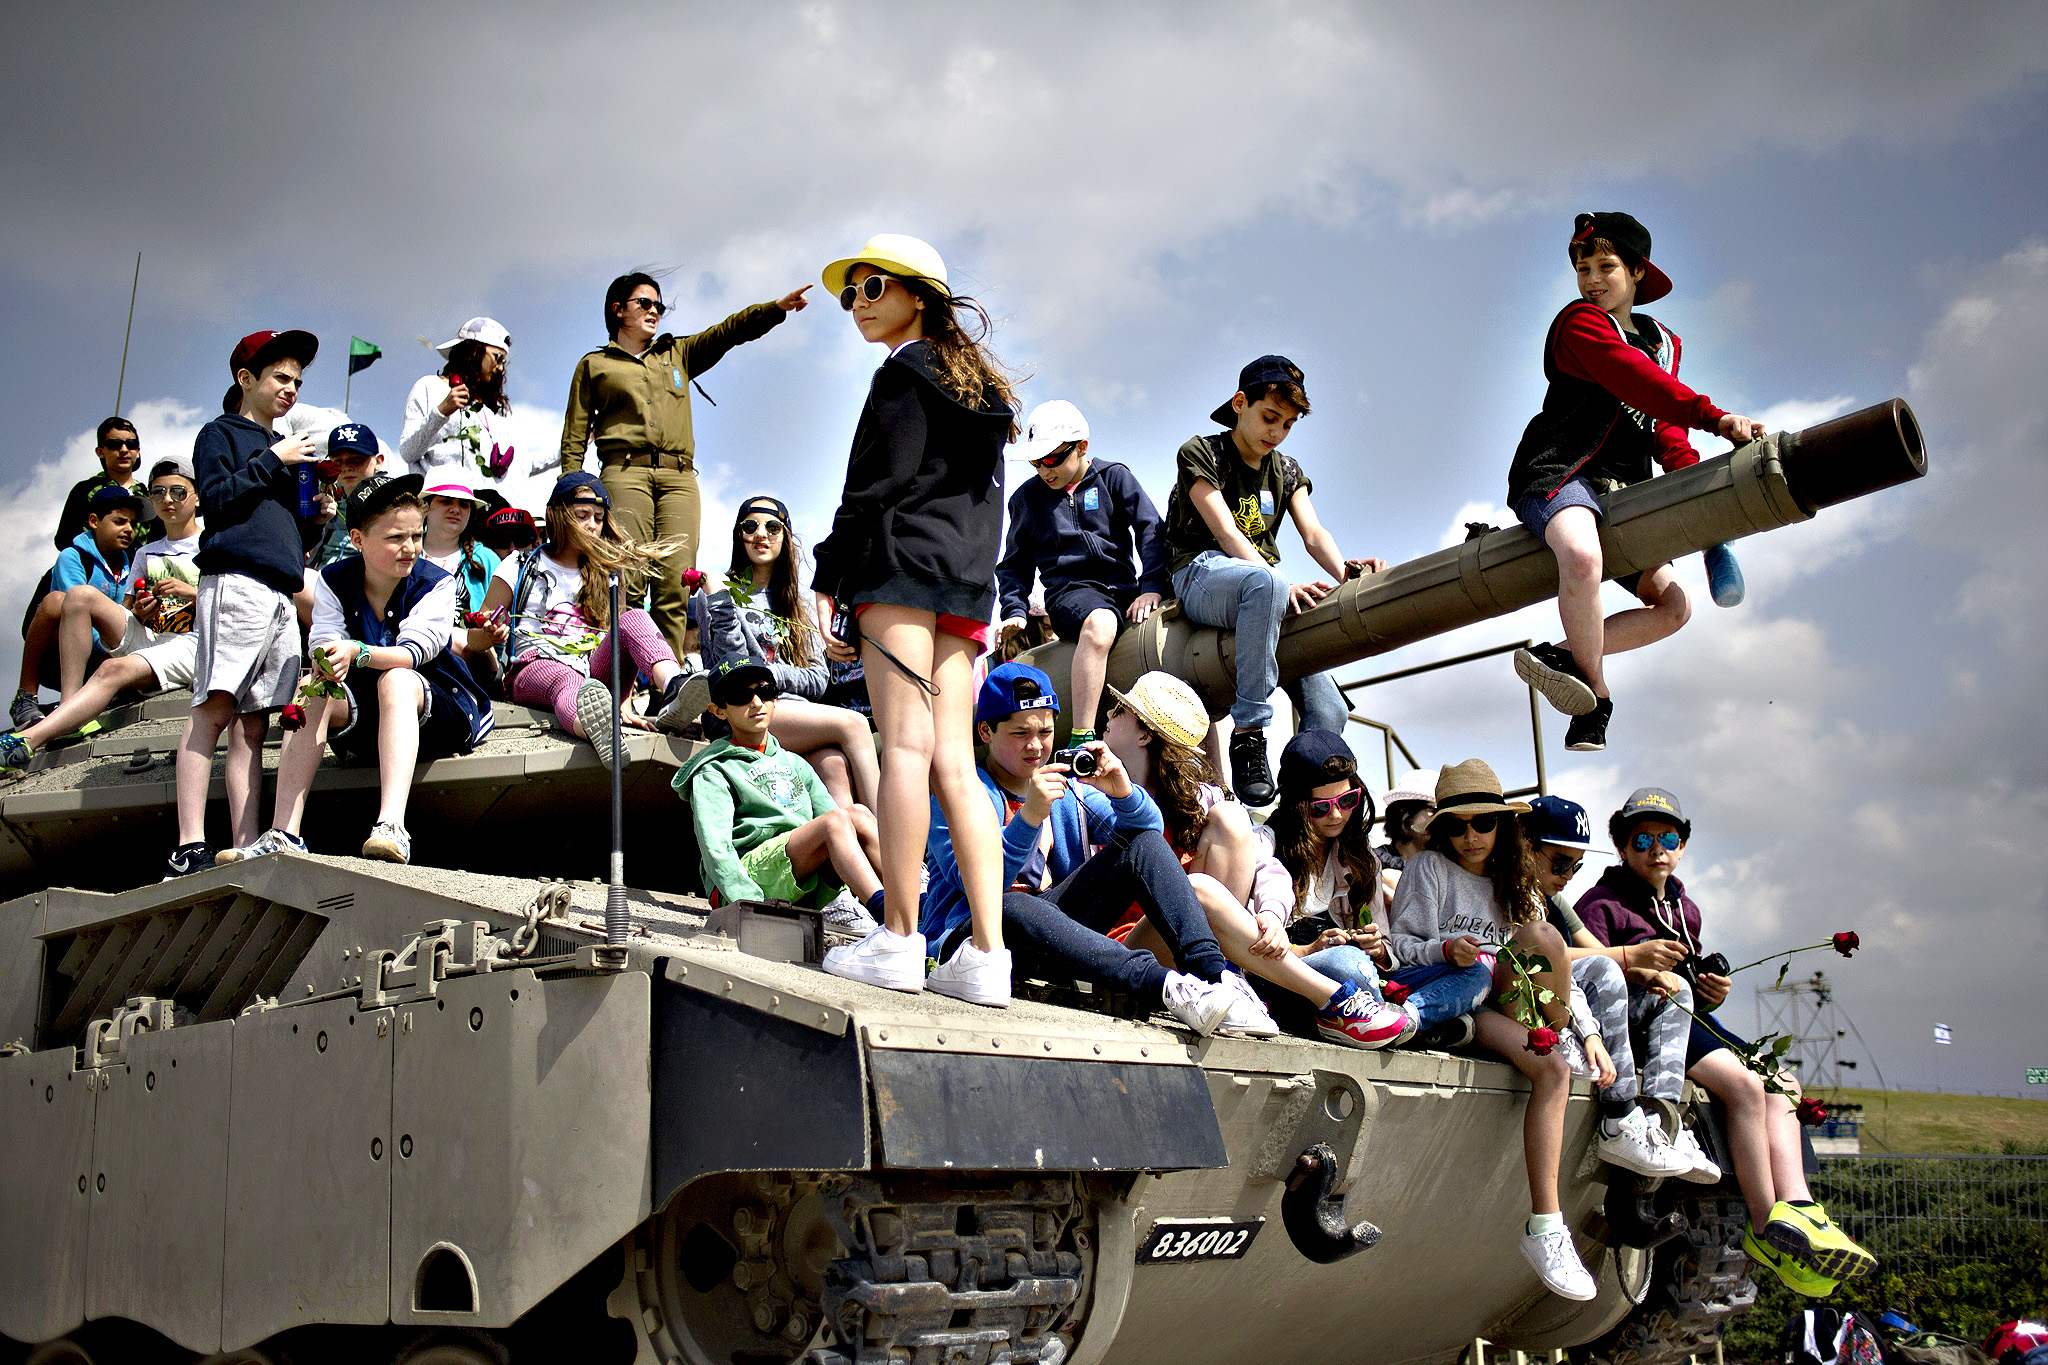 School children from Belgium sit on a tank on display as they listen to an Israeli soldier speaks about Israel's wars, near the wall of names of fallen soldiers, at the Armored Corps memorial, before a ceremony marking the annual Memorial Day for soldiers and civilians killed in more than a century of conflict between Jews and Arabs, in Latrun near Jerusalem, Israel, Wednesday, April 22, 2015. Israel came to a standstill on Wednesday as sirens wailed across the country on its annual Memorial Day for fallen soldiers and victims of terrorism.